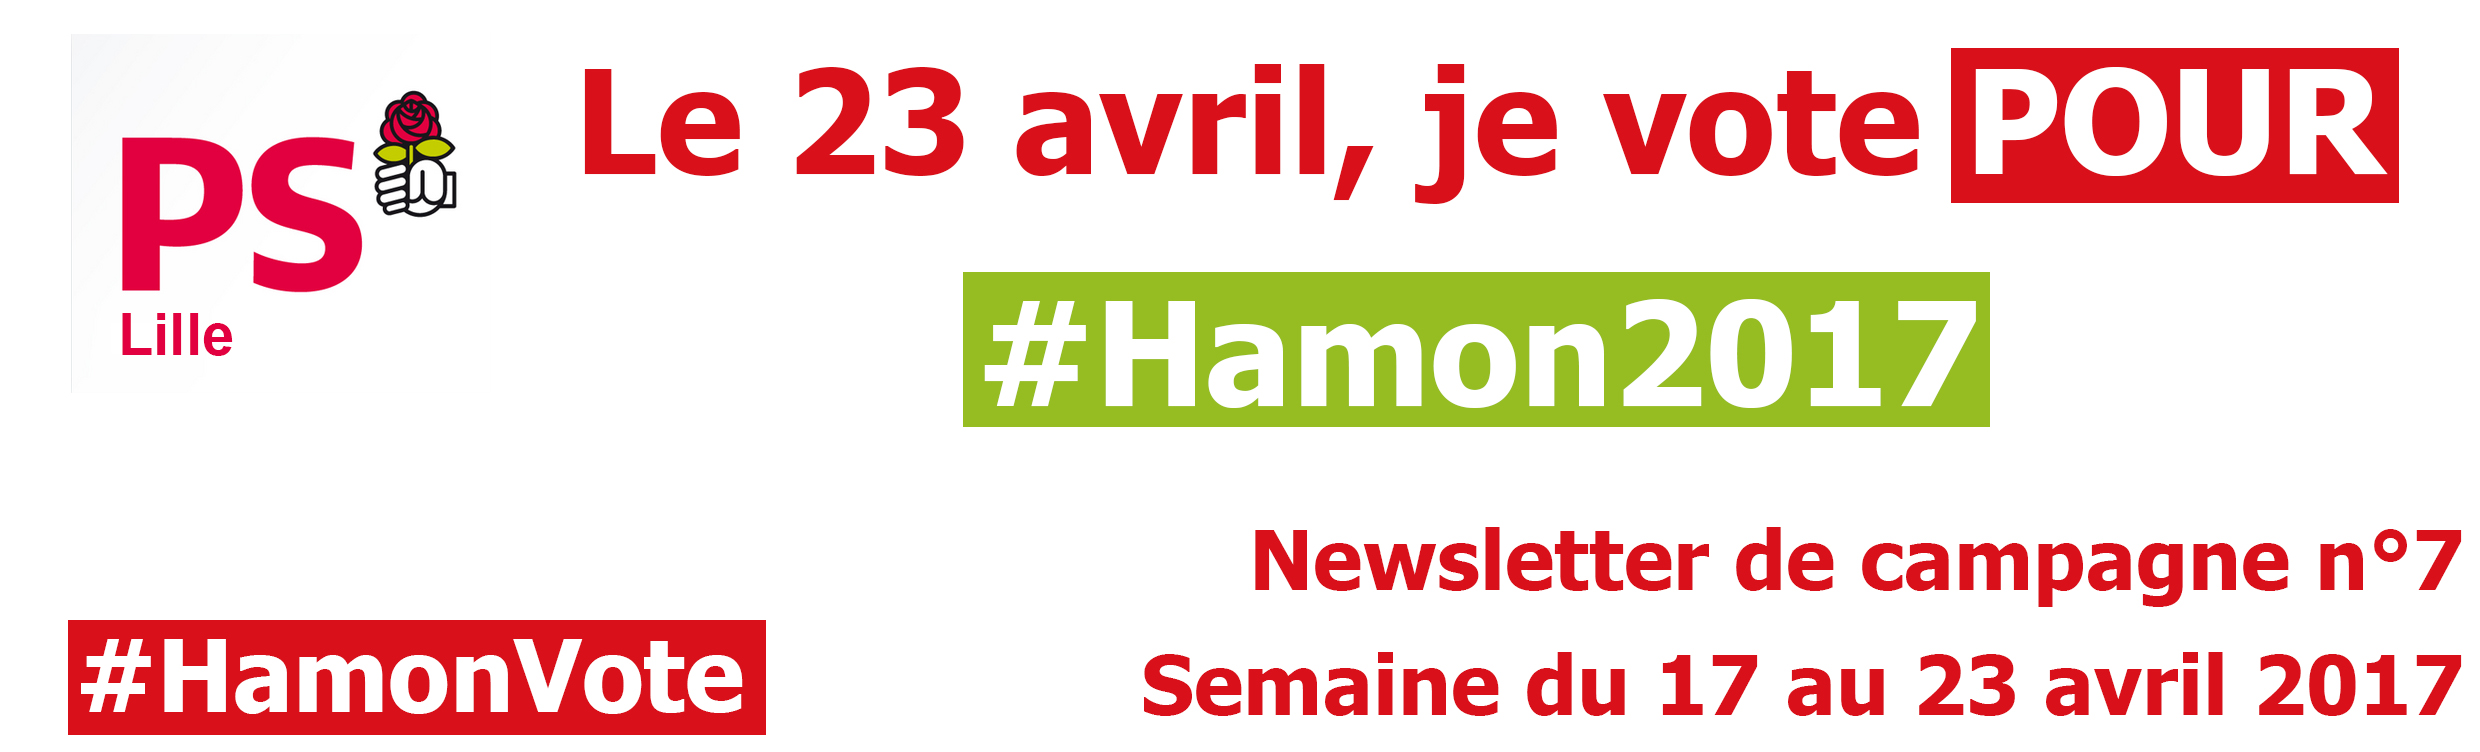 Newsletter n°7 - bandeau